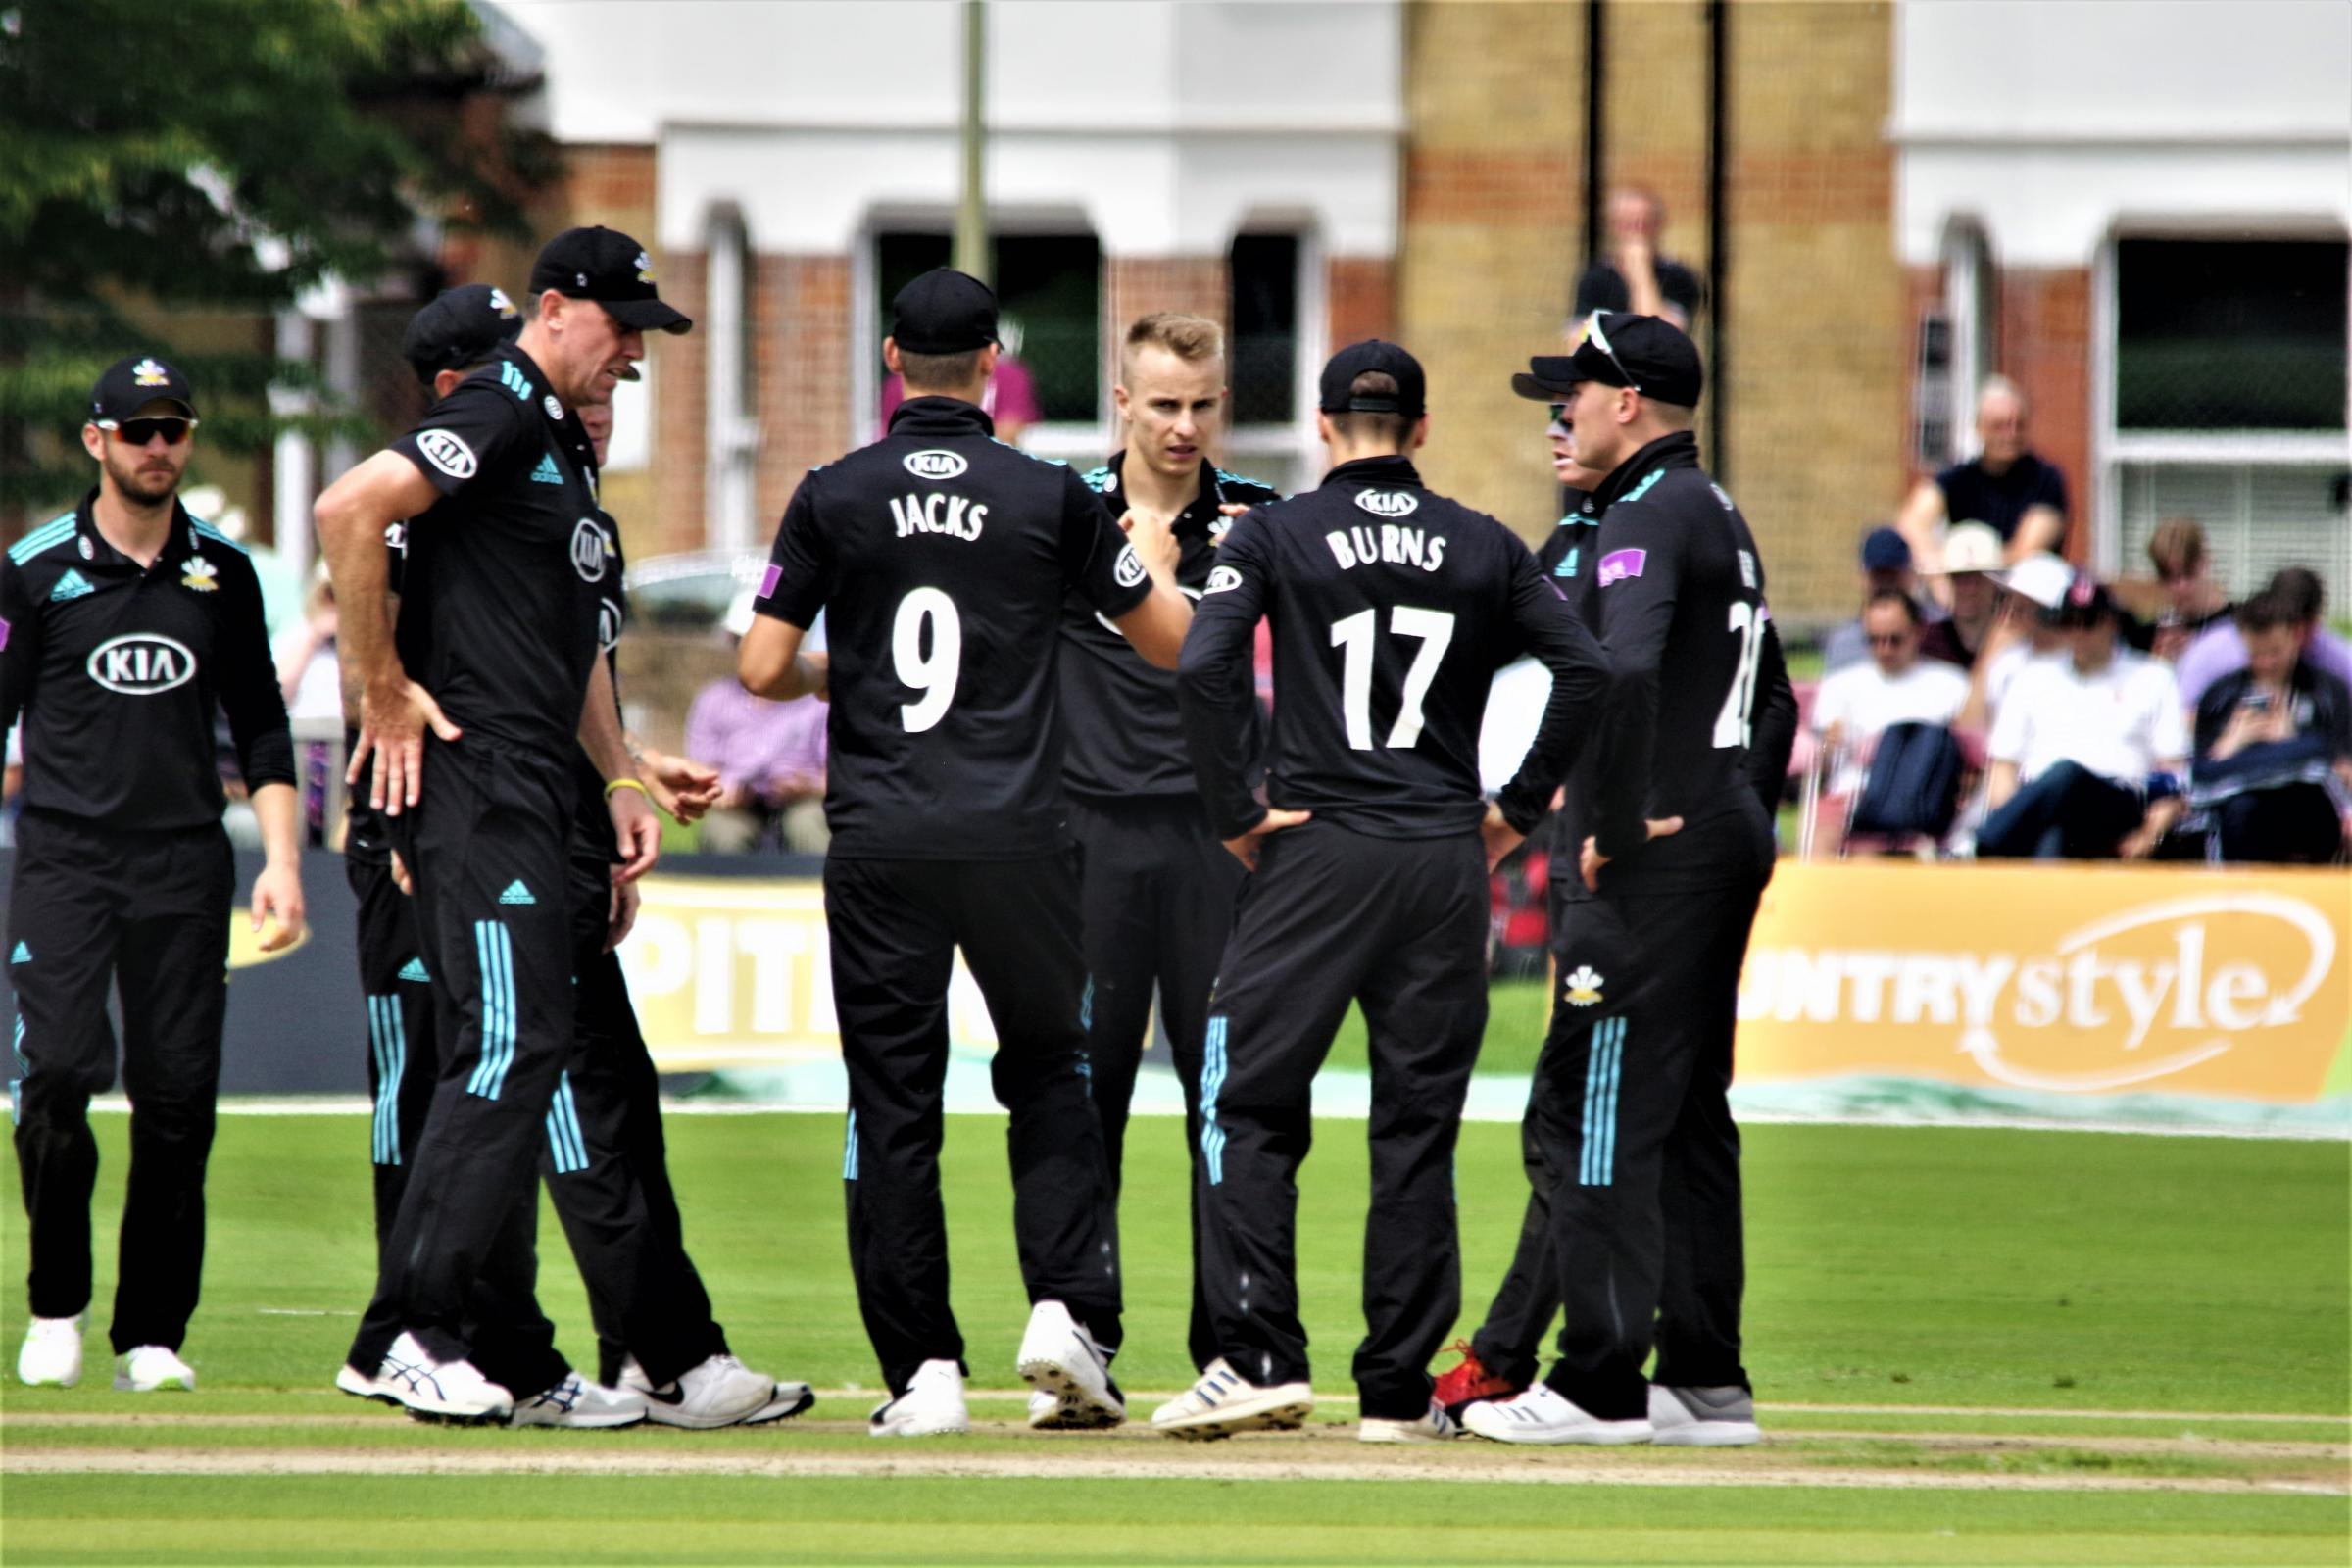 Surrey celebrate a wicket against Kent at Beckenham. Picture: Mark Sandom